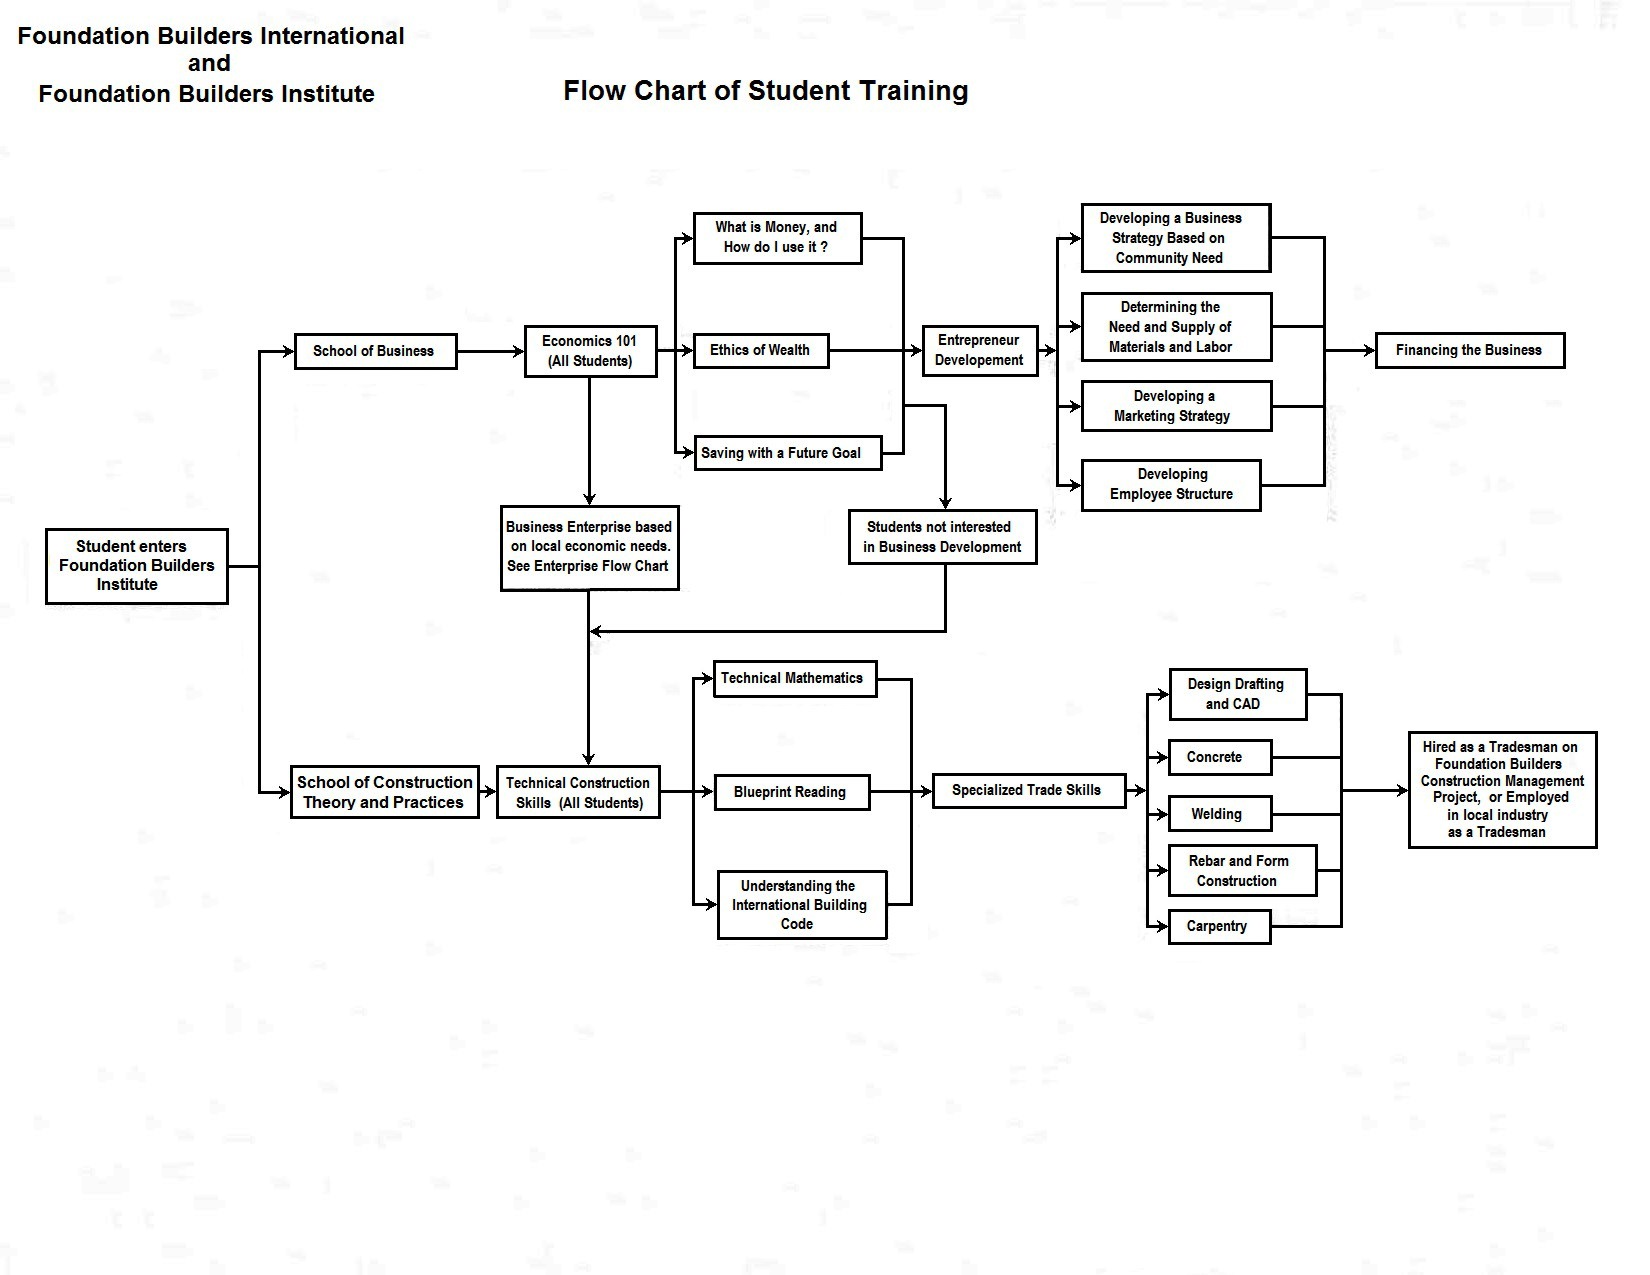 Flow Chart Student Training<p><span class='ddmg-button ddmg-xxlarge ddmg-black ddmg-padding-large ddmg-display-topright' title='Close Modal Image'><i class='fa fa-close'></i></span></p>